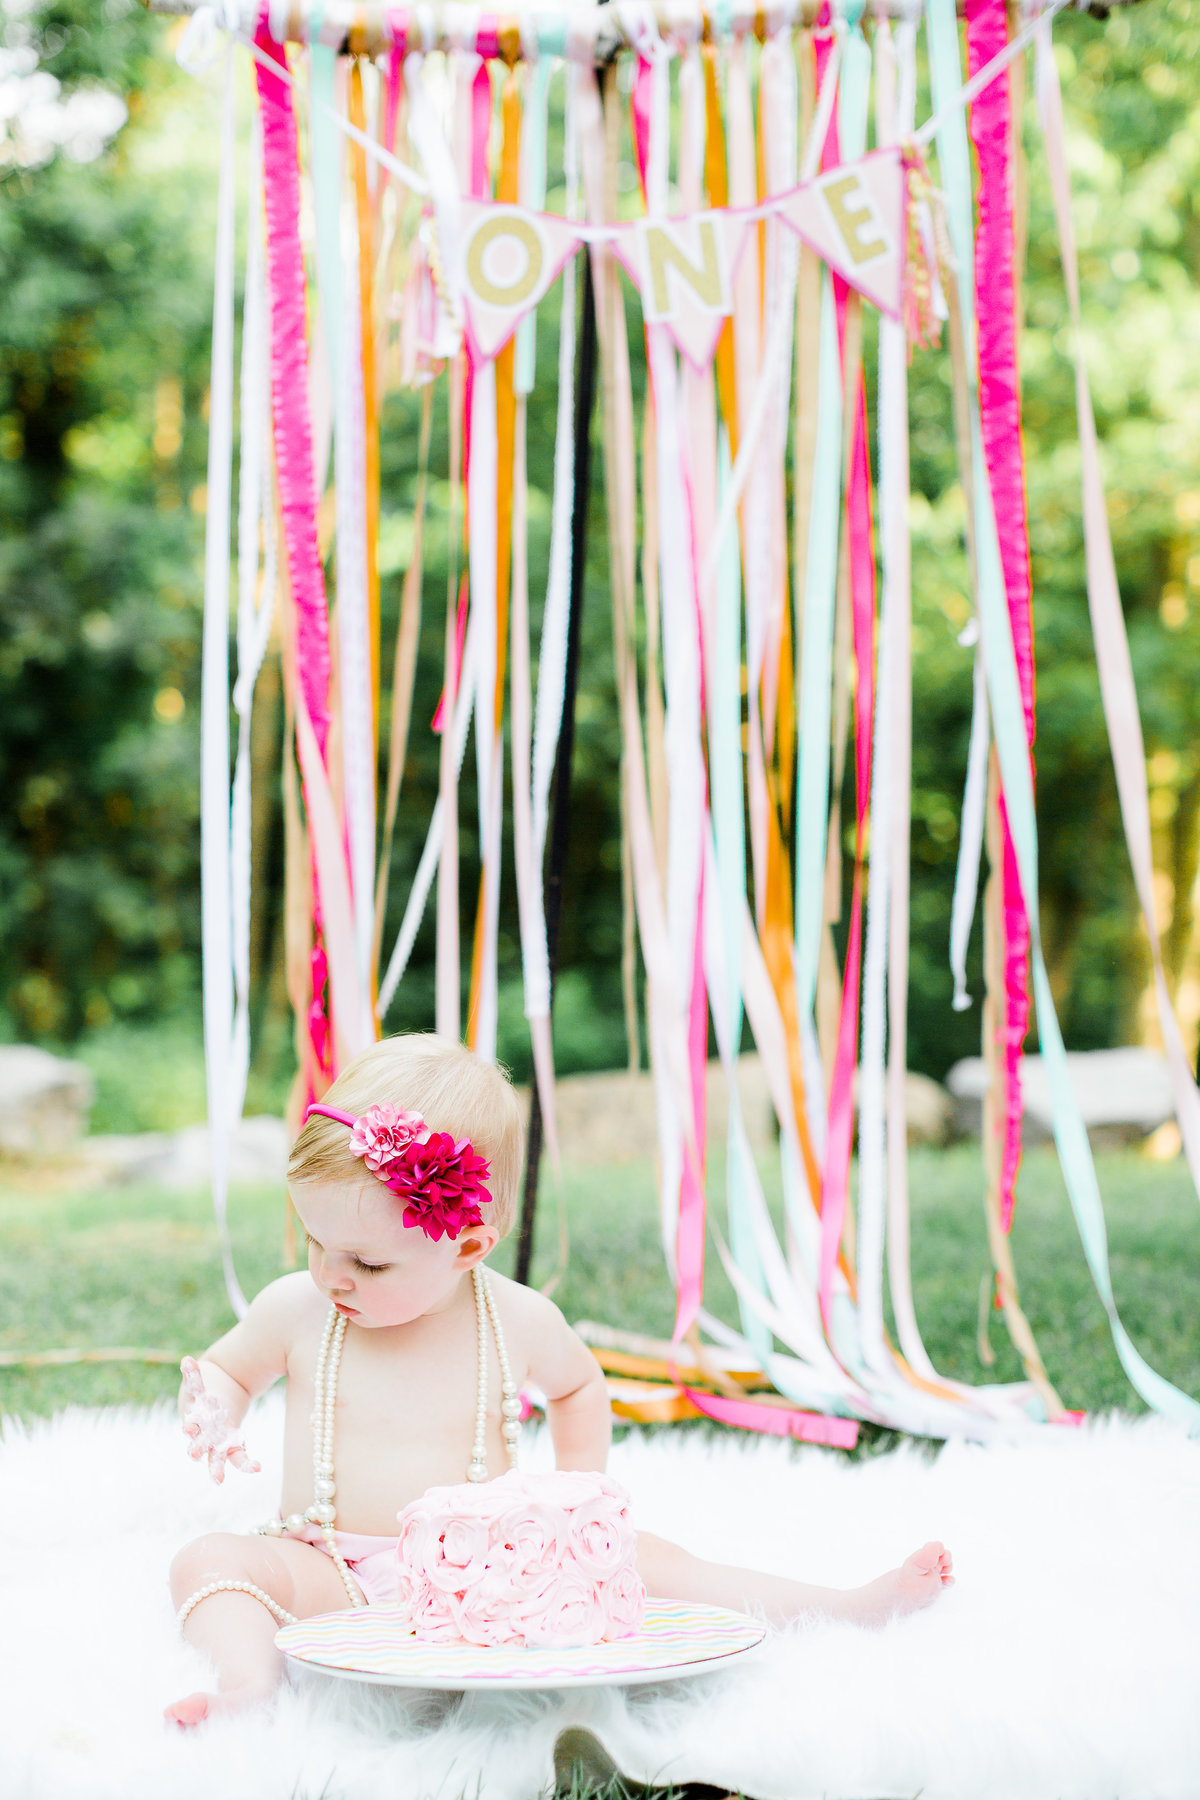 One year old's cake smash session with pink cake pink bow and pink ribbon